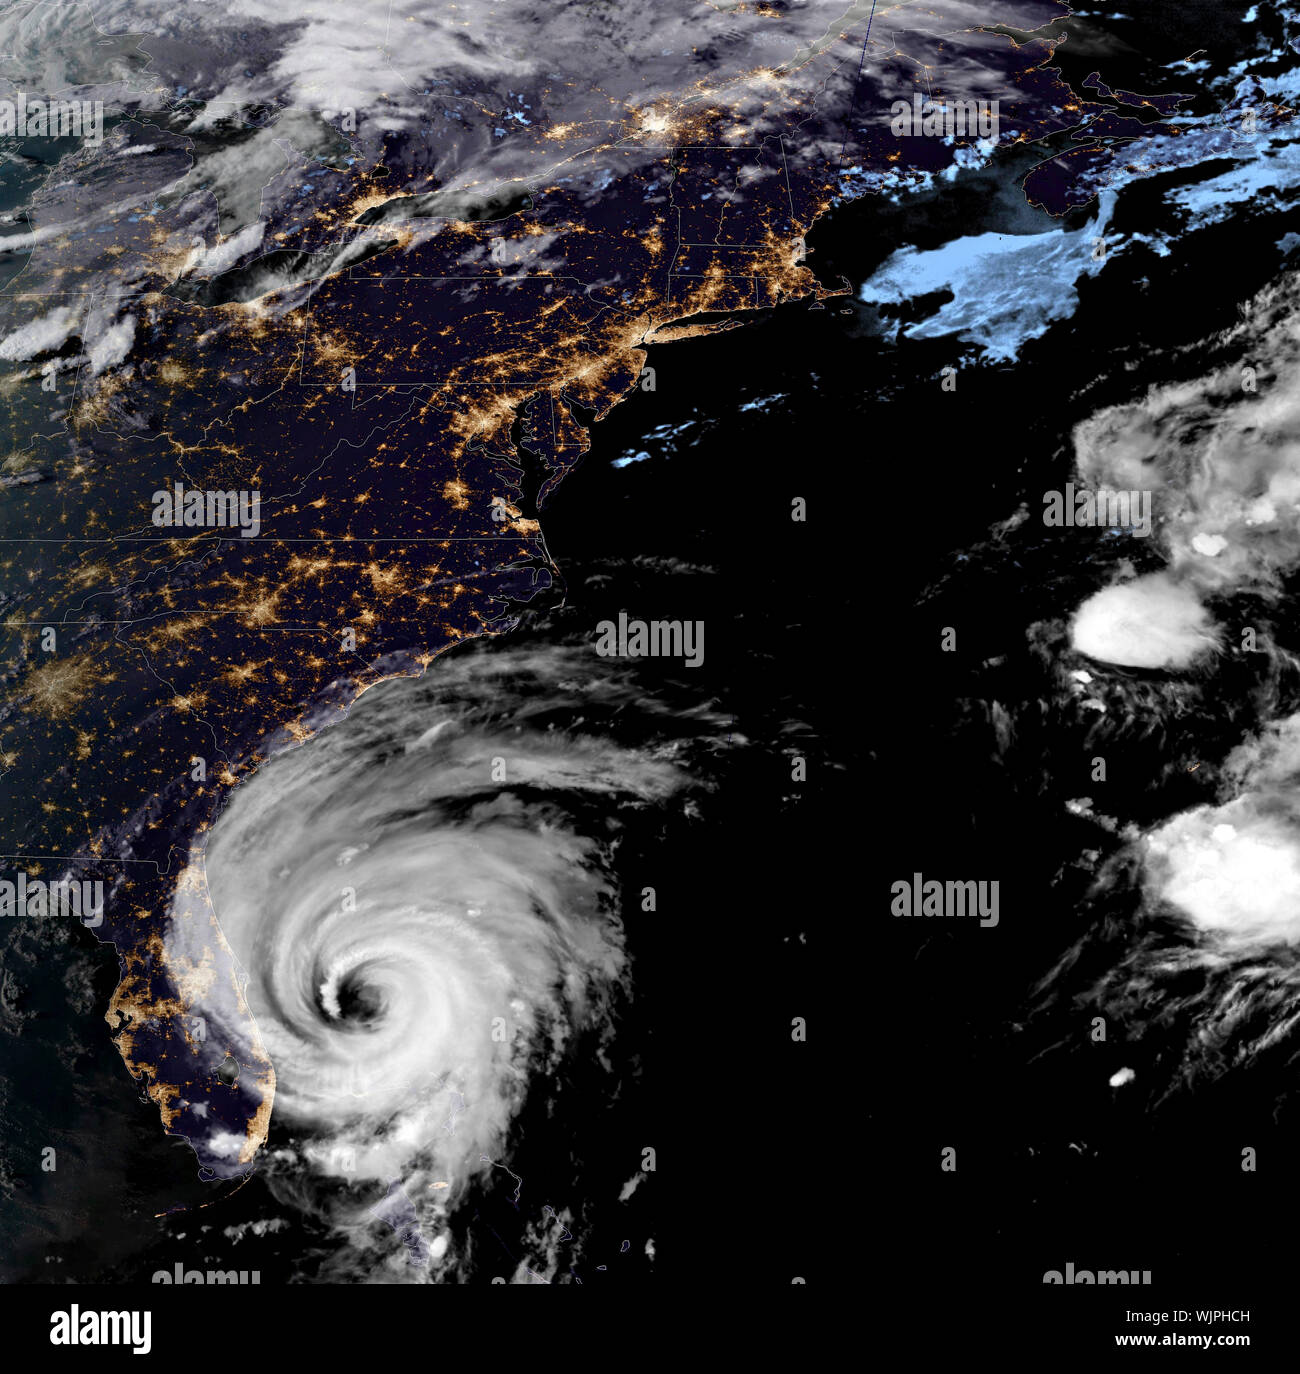 The NOAA GOES-16 satellite showing a night view of catastrophic Hurricane Dorian as it begins moving up the coast of Florida as a Category 2 storm September 3, 2019 in the Atlantic Ocean. Dorian struck the small island nation as a Category 5 storm with winds of 185 mph and has now downgraded to Category 2 and is slowly creeping along the coast of Florida. Credit: NOAA/Planetpix/Alamy Live News Credit: Planetpix/Alamy Live News - Stock Photo